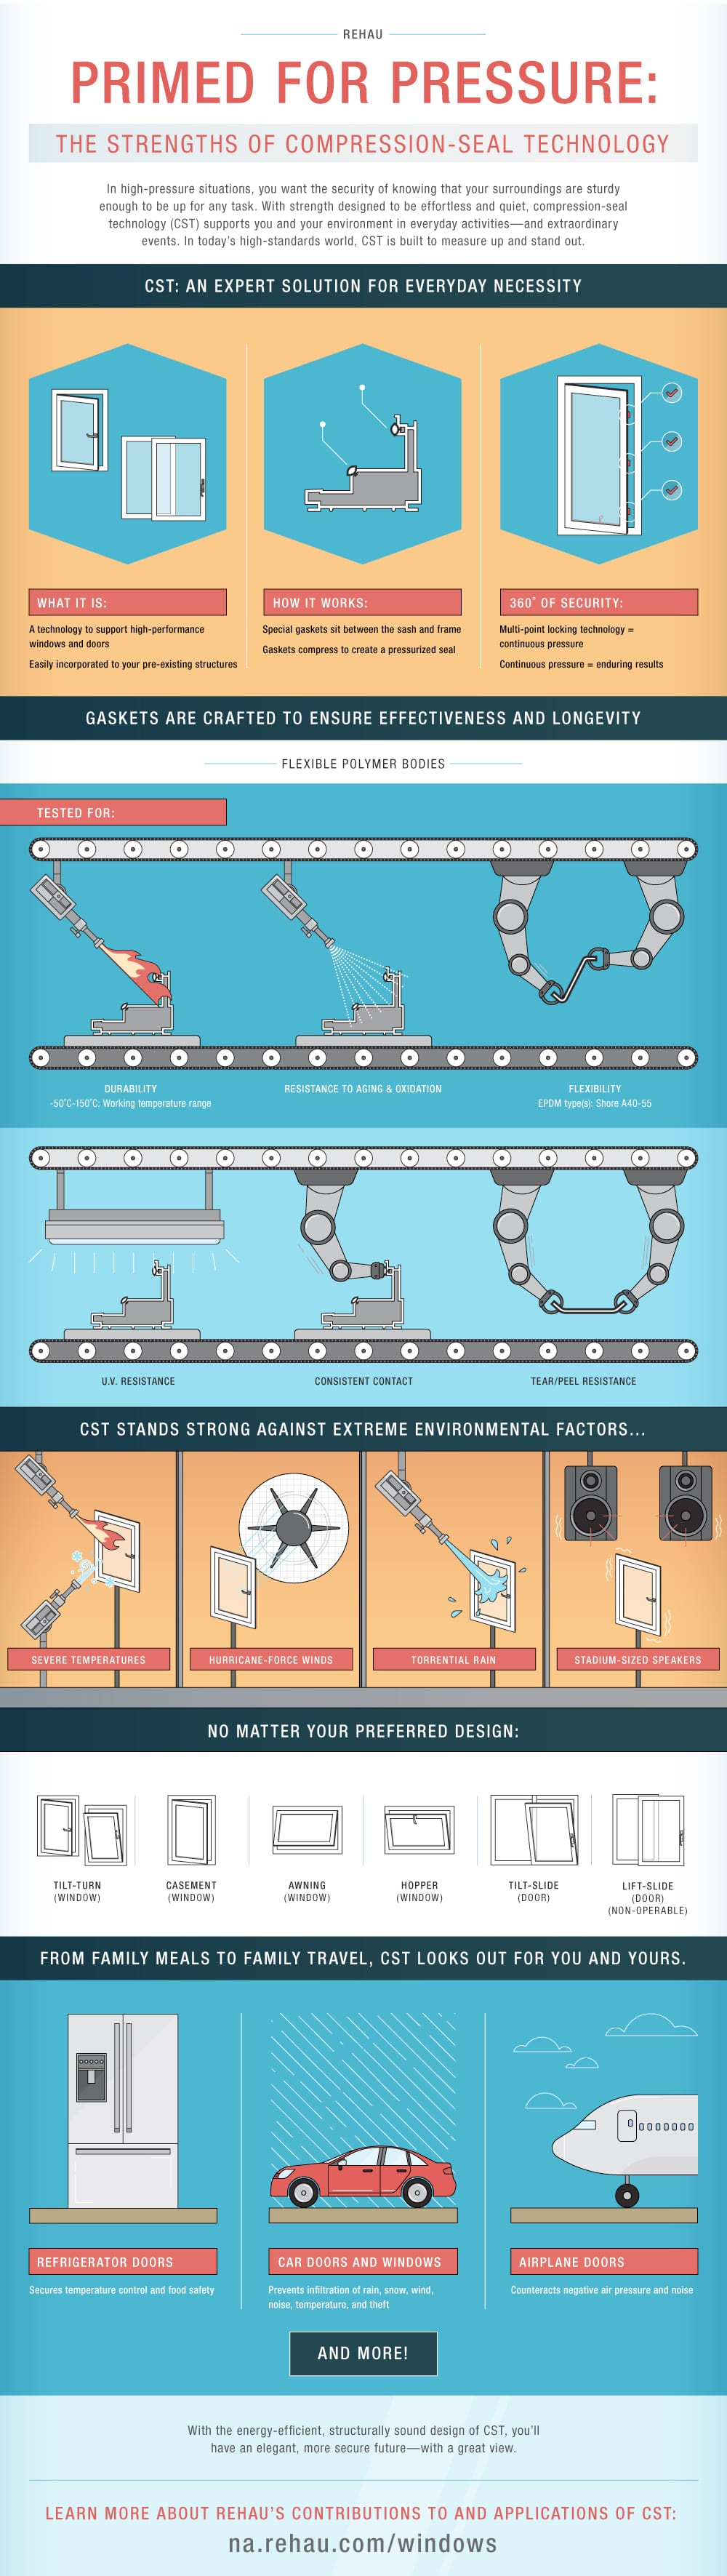 REHAU-Compression Seal Technology Infographic